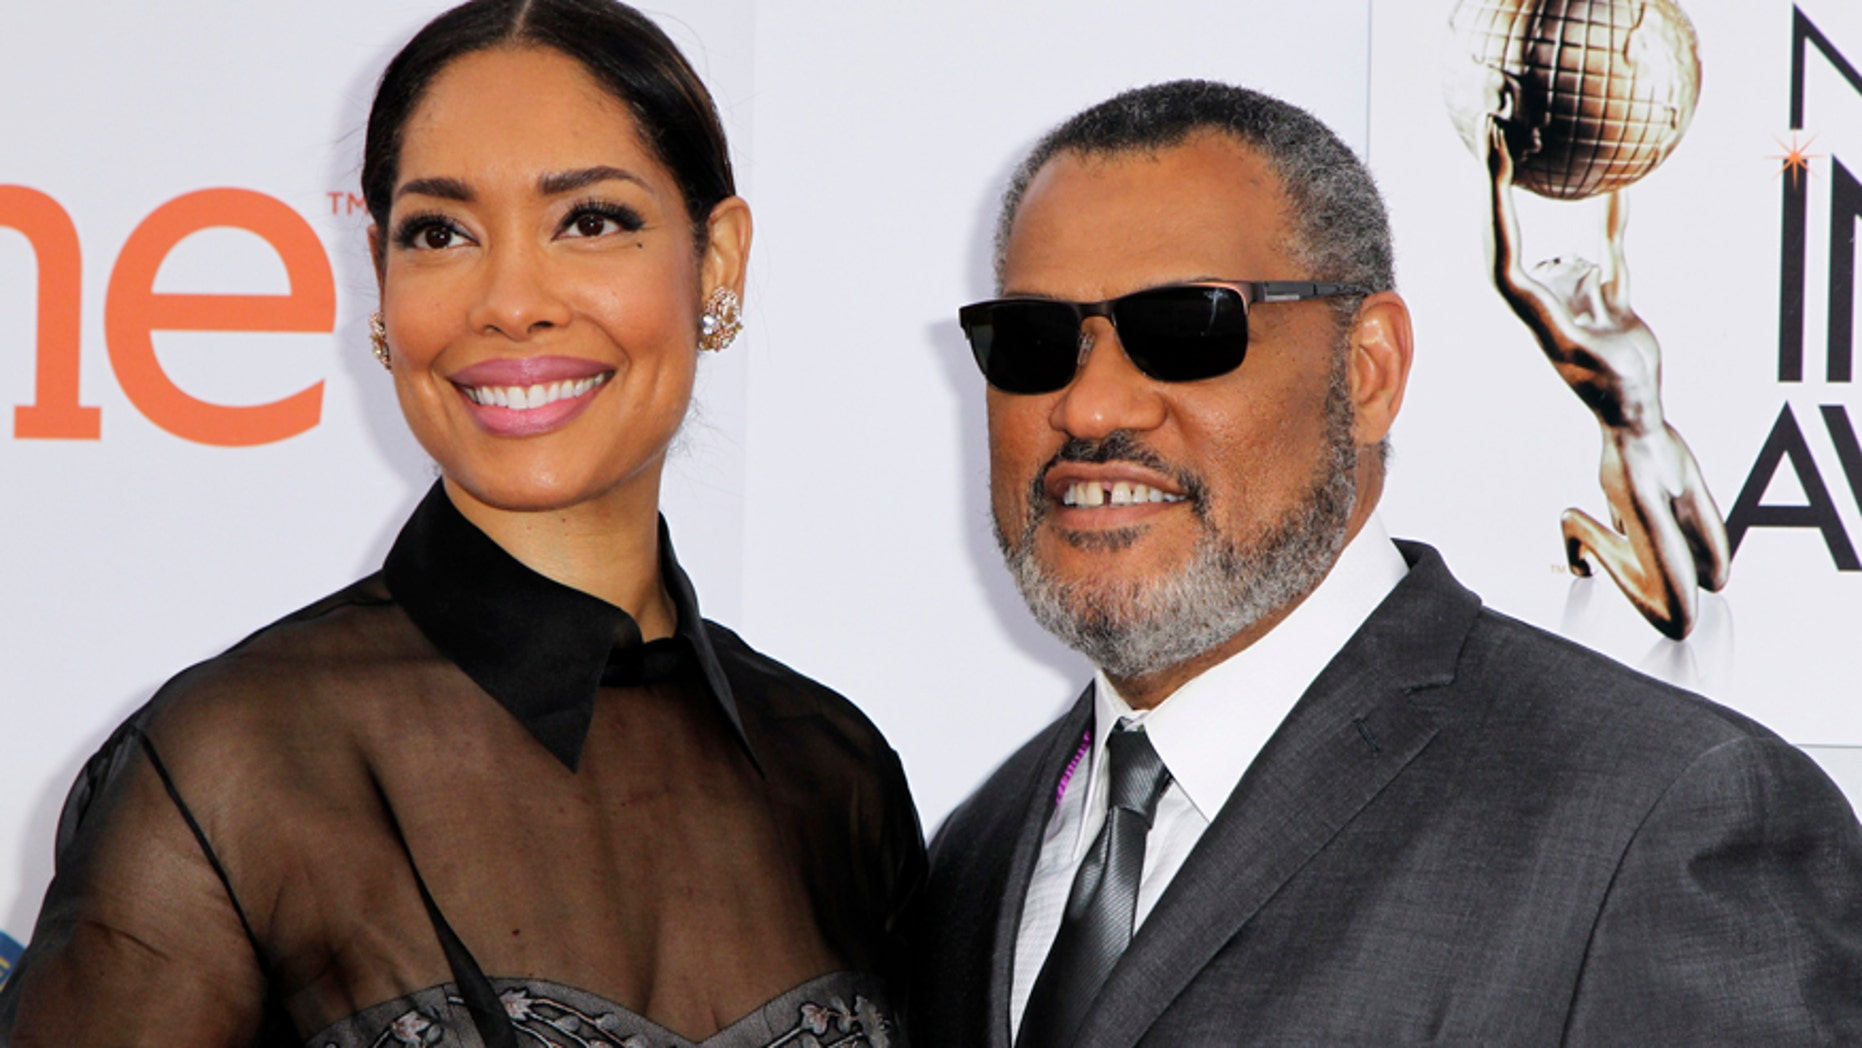 Actor Laurence Fishburne and wife, Gina Torres, arrive at the 46th NAACP Image Awards in Pasadena, California February 6, 2015.